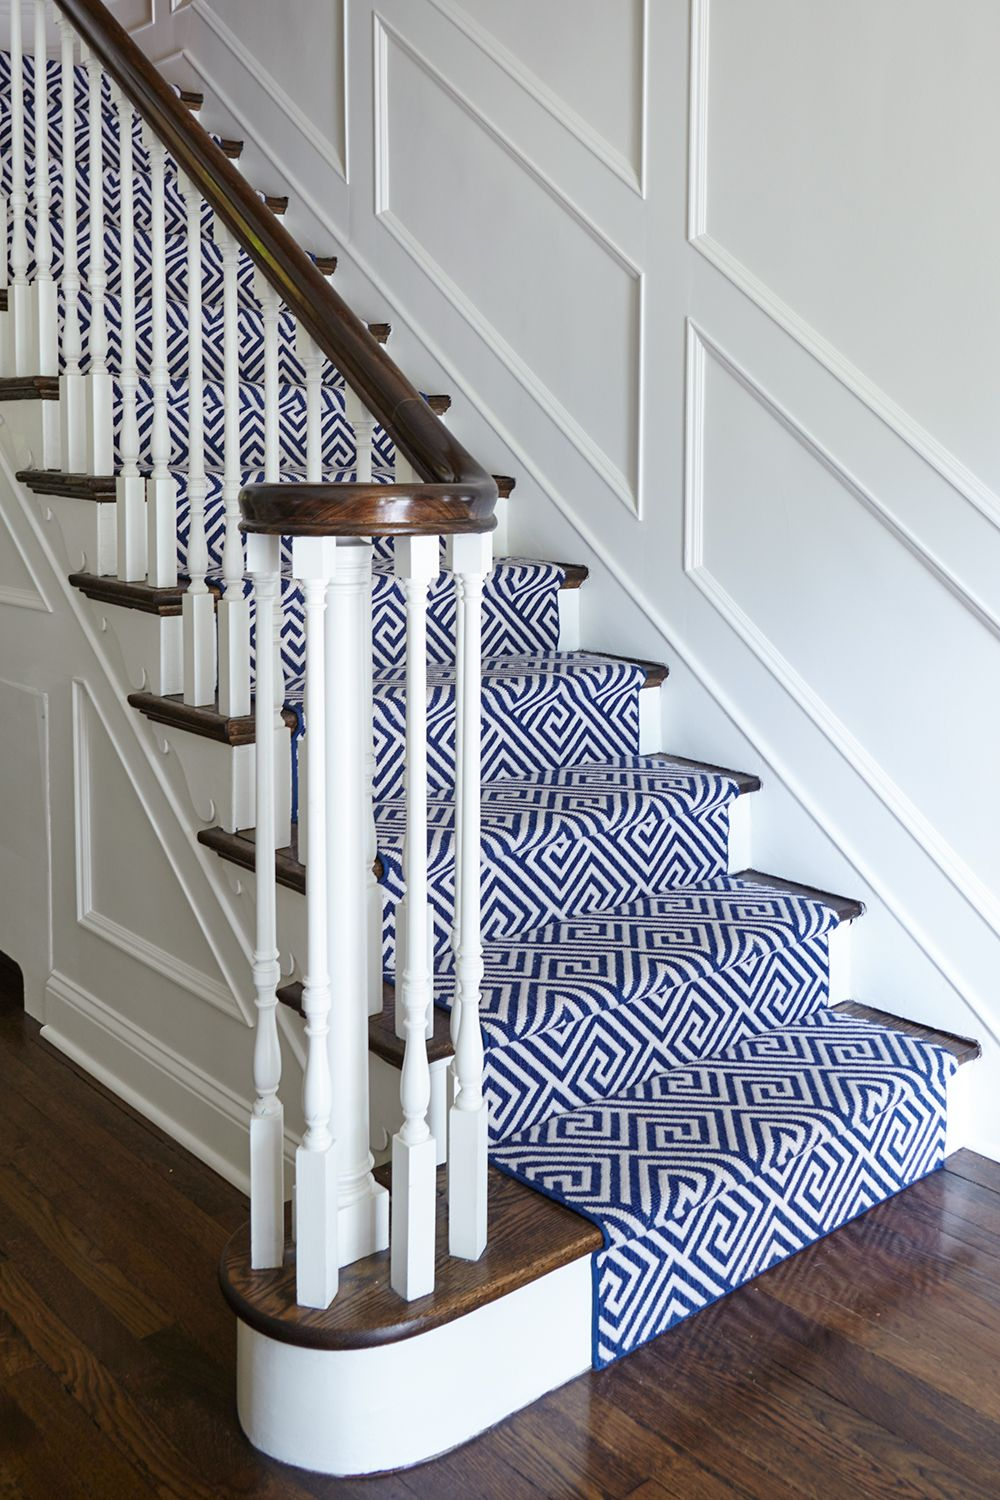 Superieur Navy And White Geometric Runner By Stark Carpet For This Classic 1920u0027s  Home. Custom White Wall Paneling And Painted White Risers.